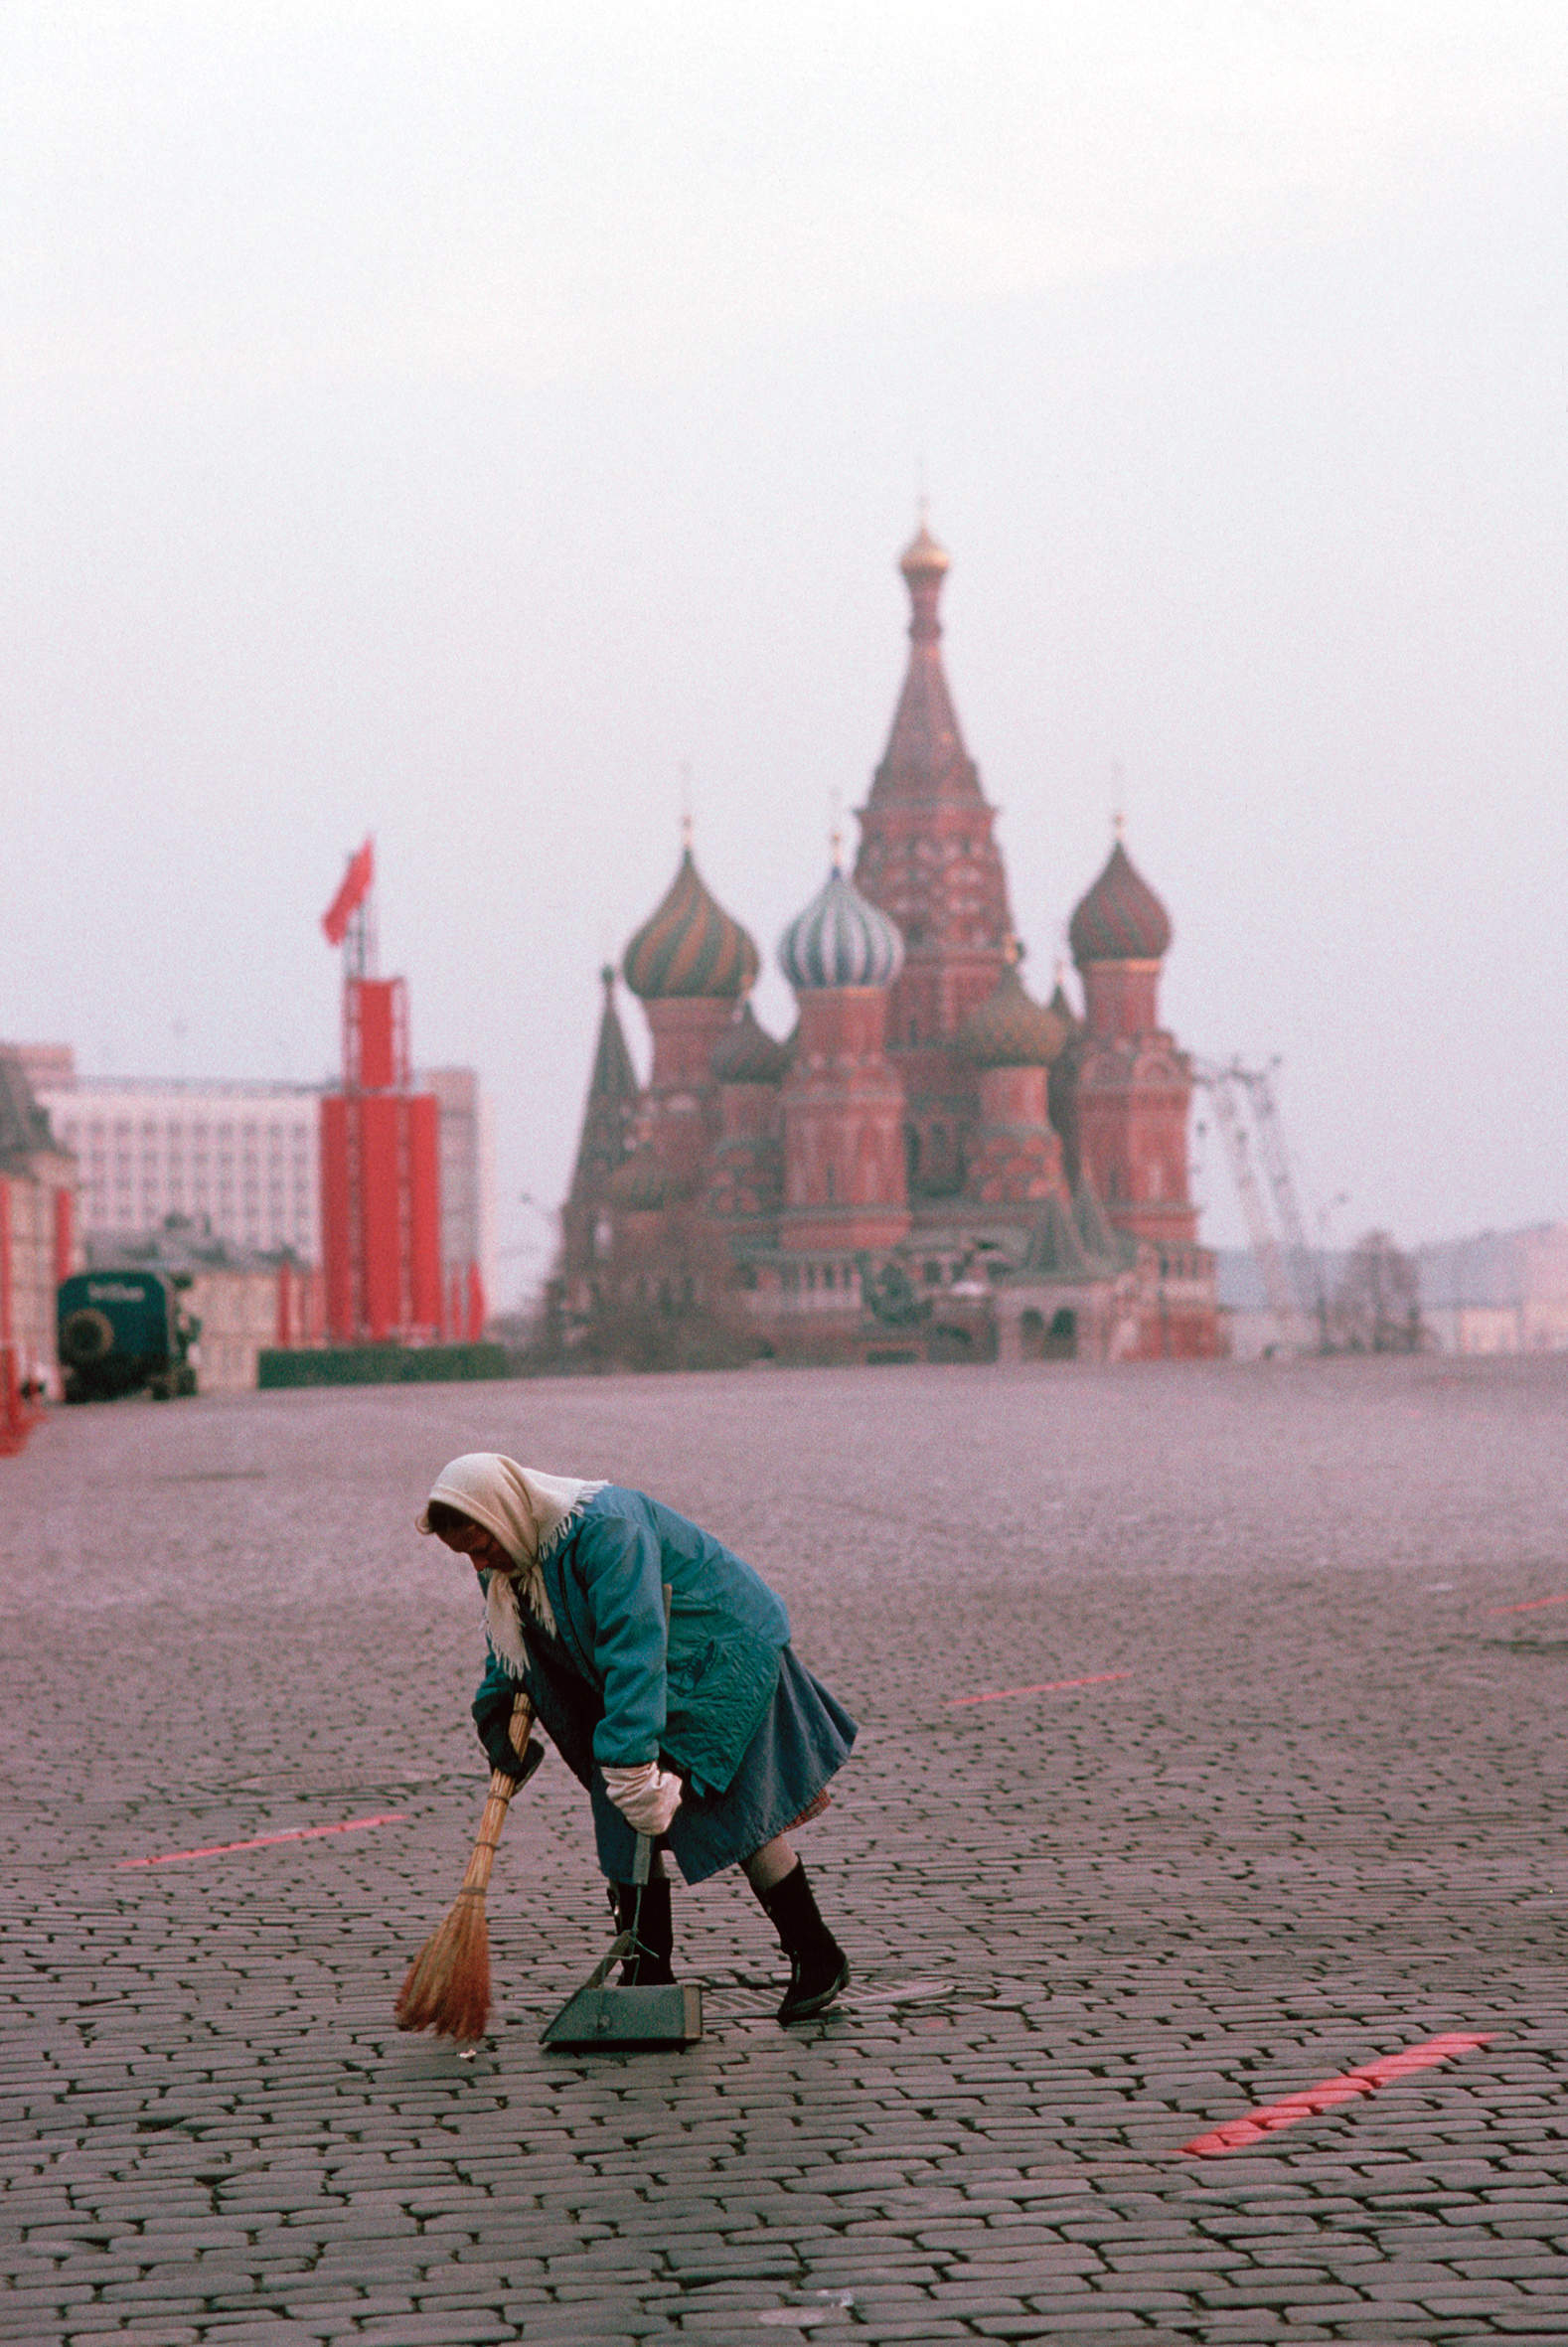 History's losers: intimate stories from survivors of the Soviet empire